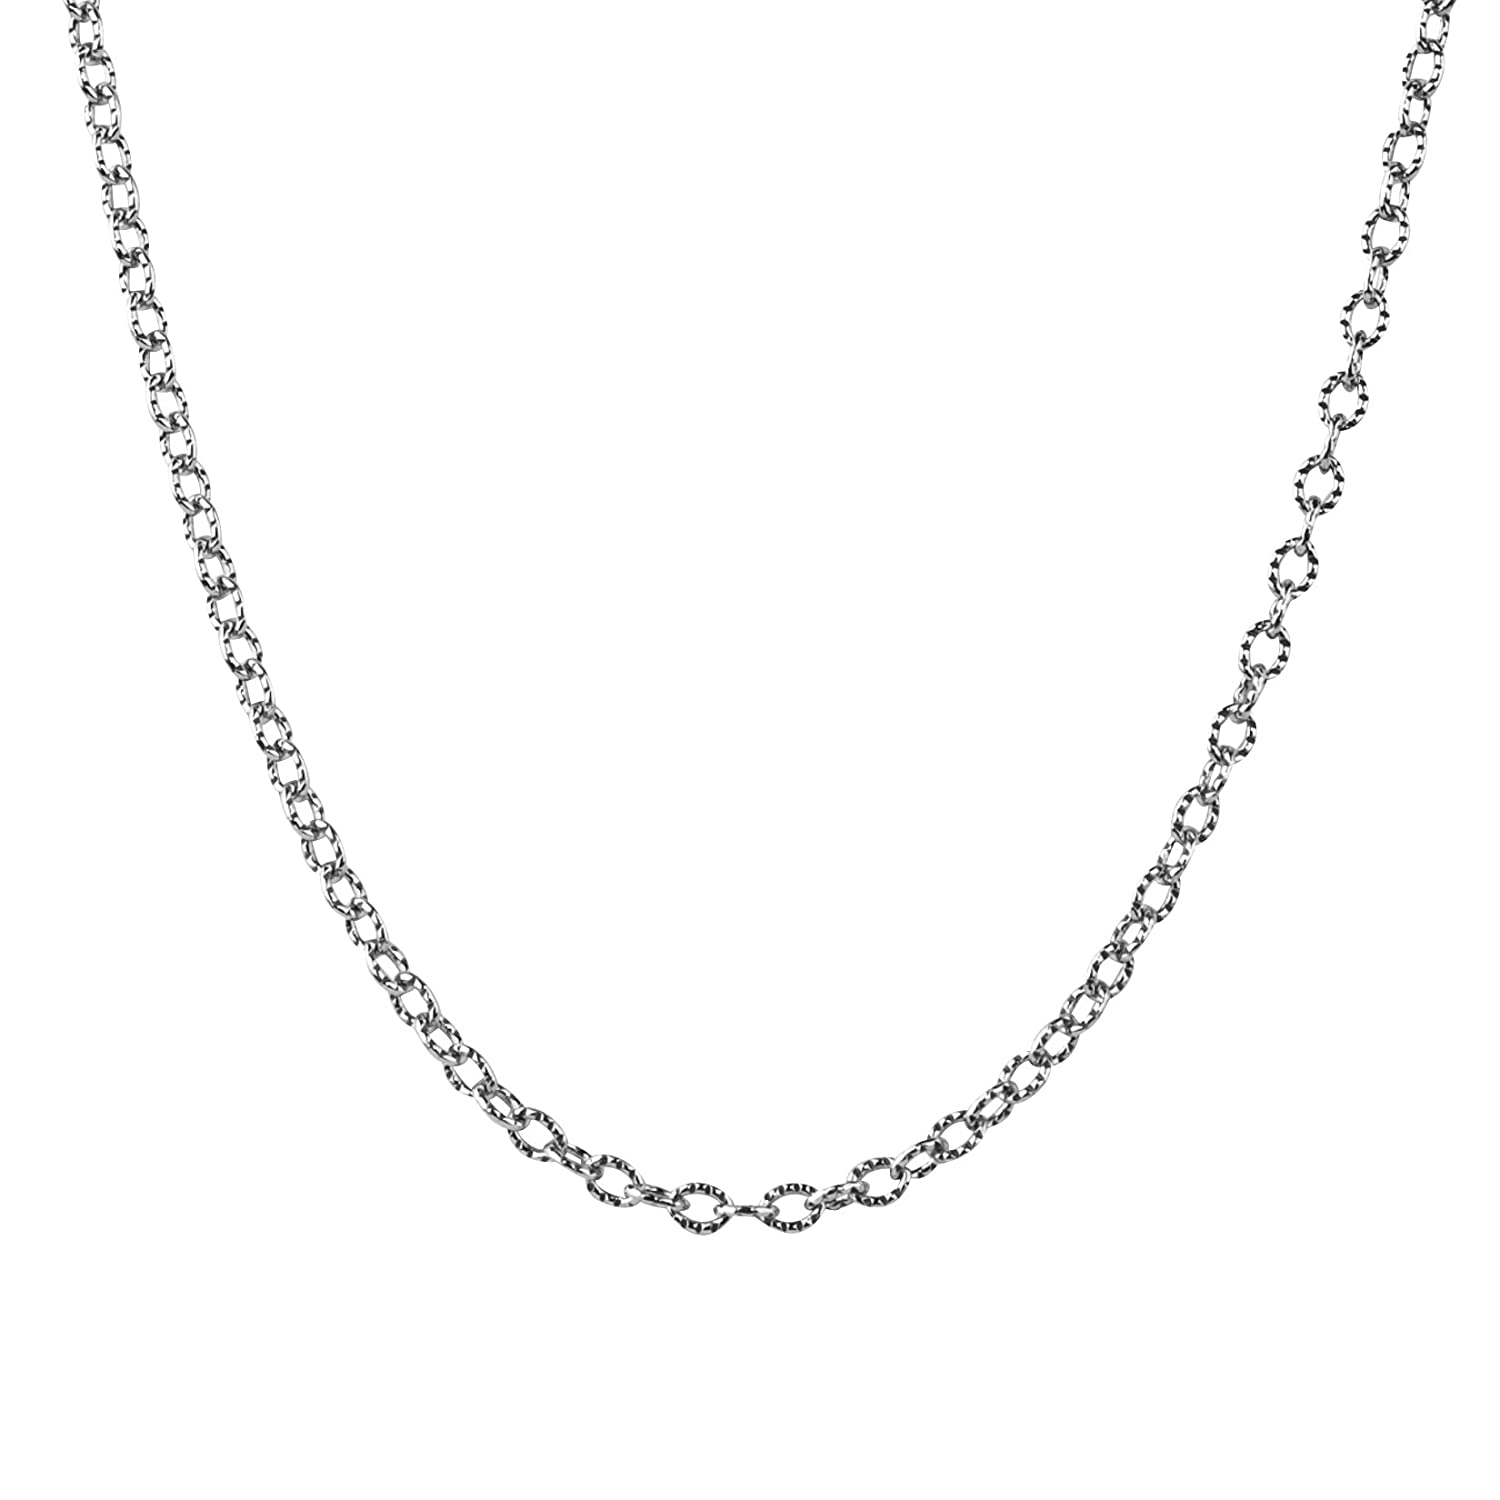 American West Sterling Silver Curb Link Chain Necklace